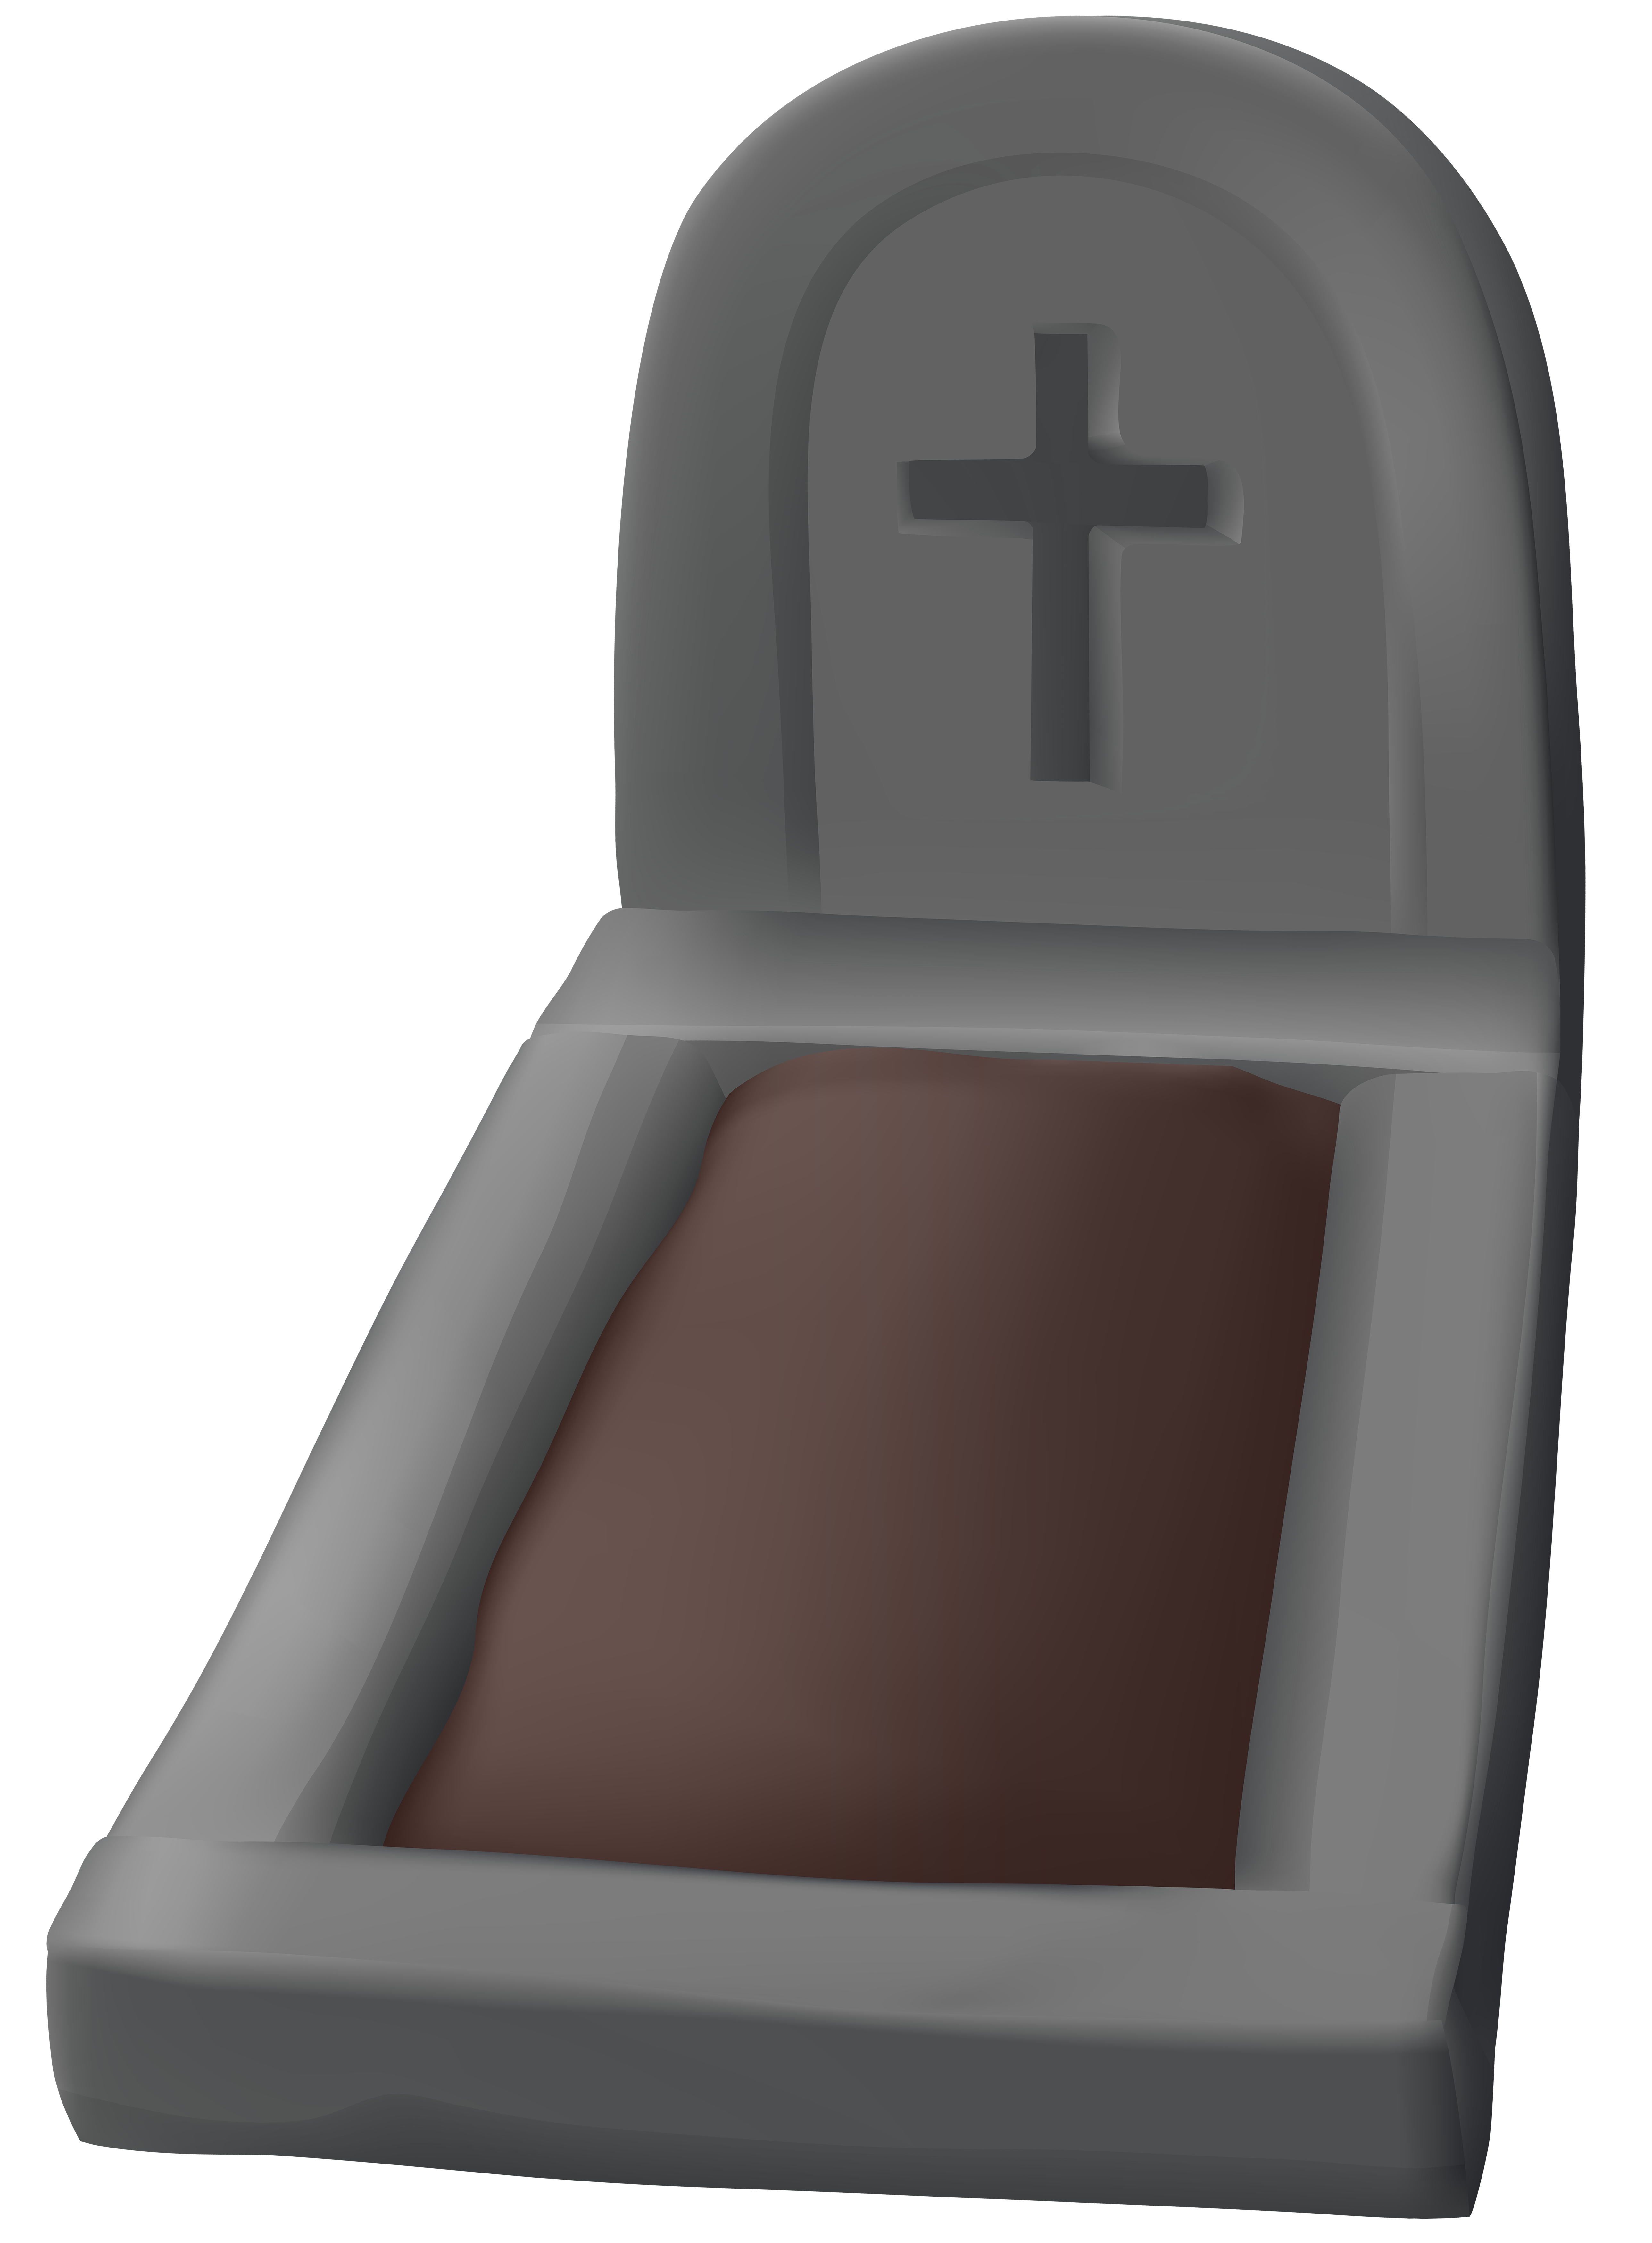 Cross and tomb clipart picture transparent Tomb PNG Clip Art Image | Gallery Yopriceville - High-Quality ... picture transparent